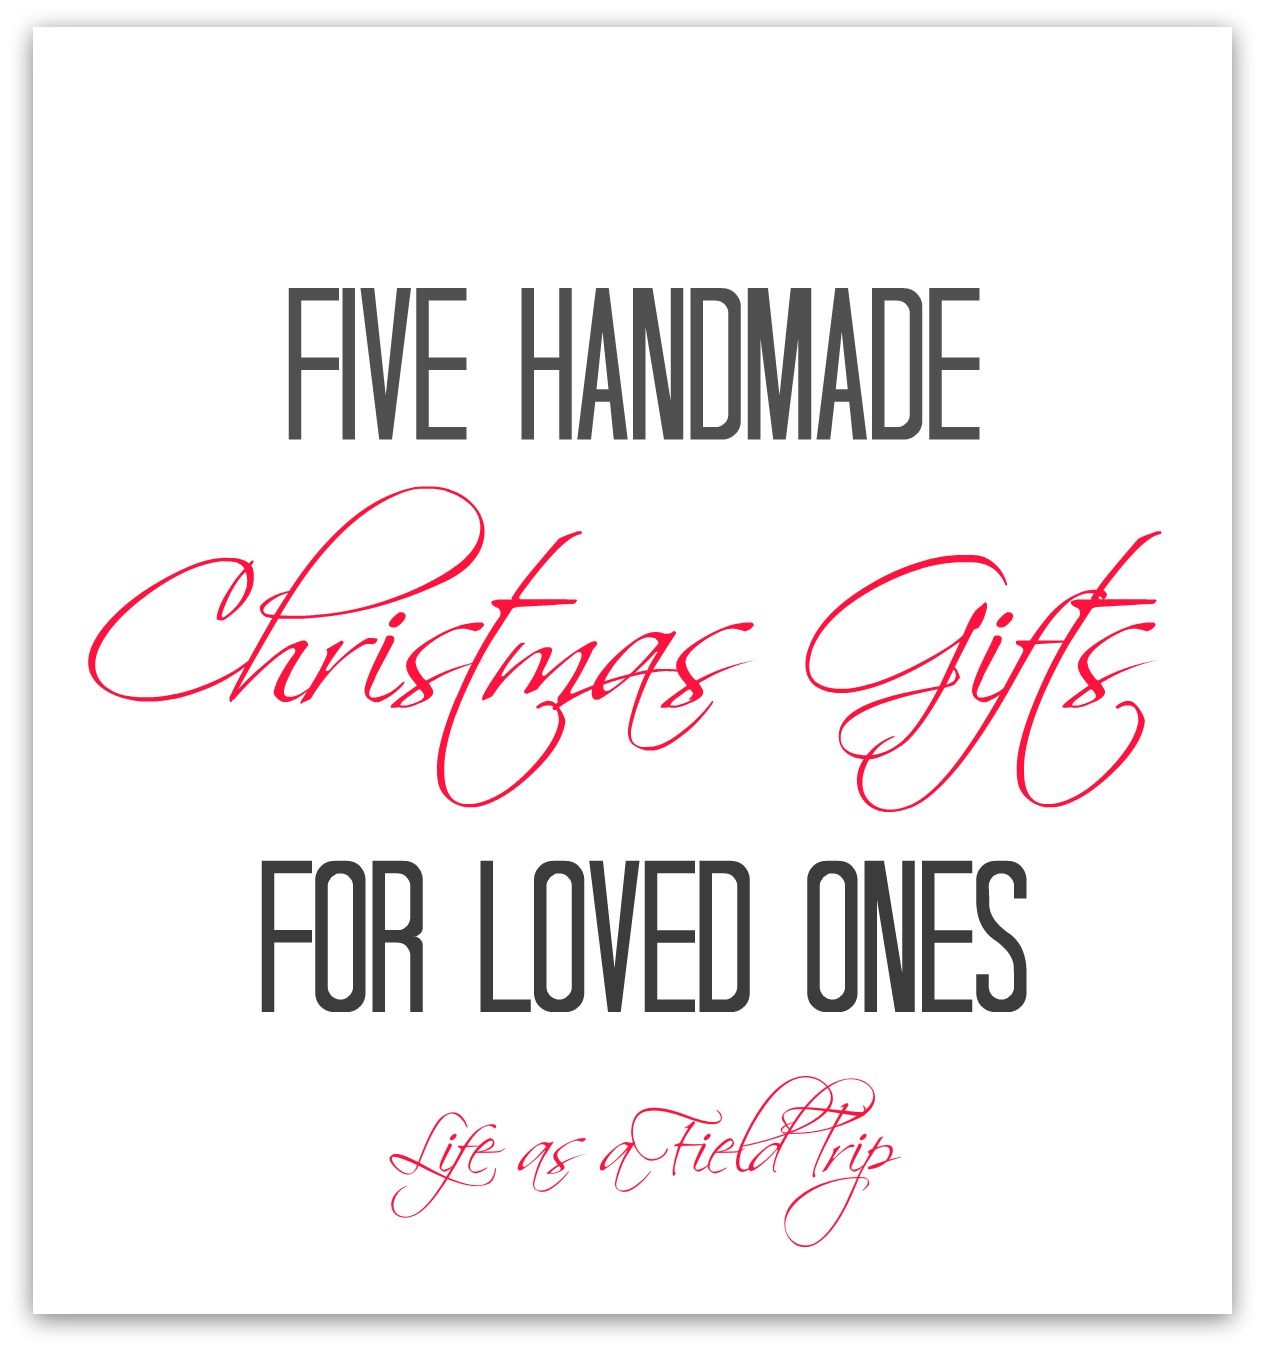 Five Handmade Christmas Gifts for Loved Ones {Life as a Field Trip}